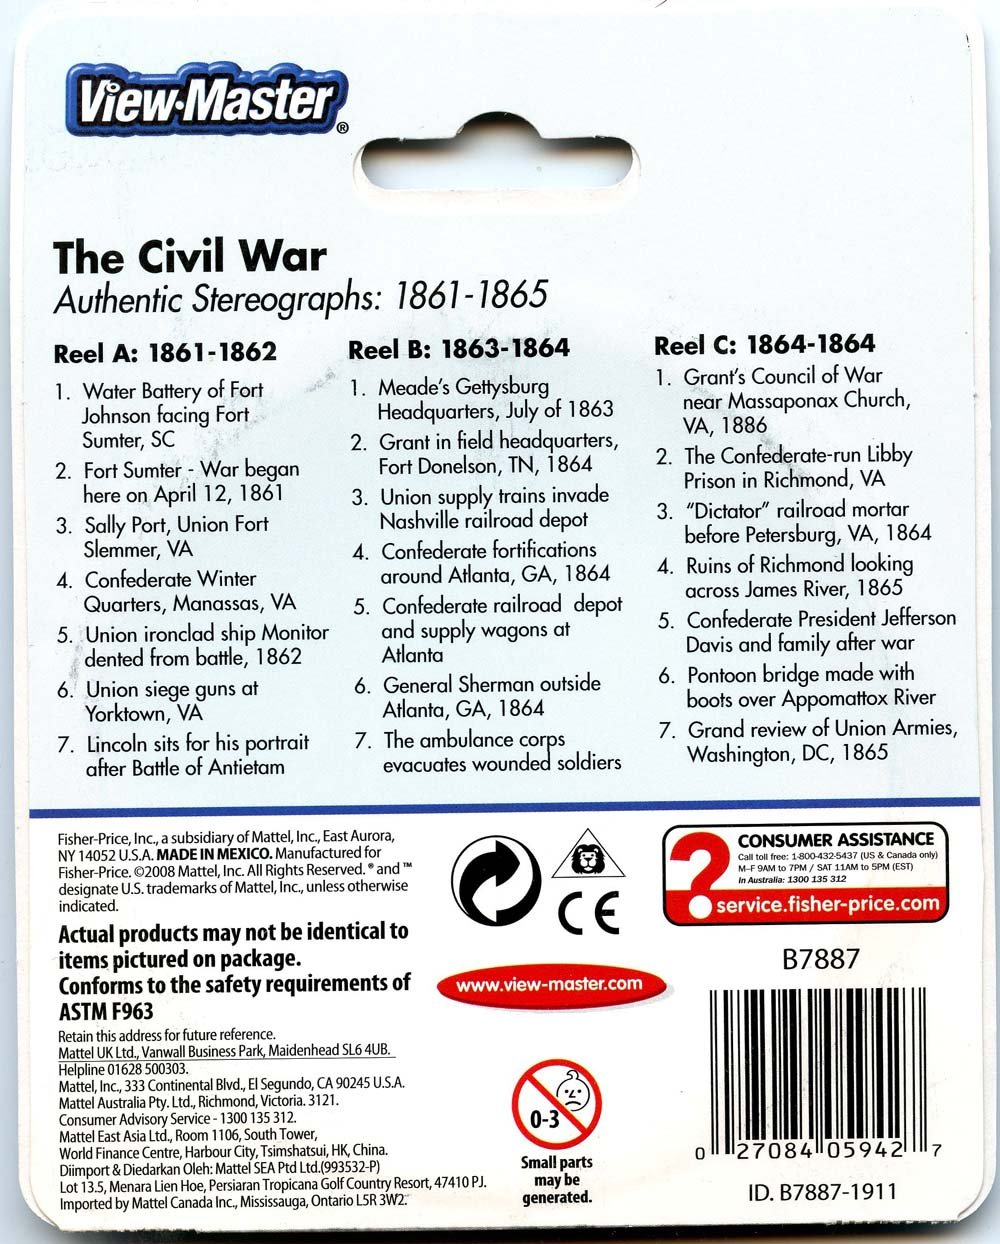 ViewMaster -The Civil War - Authentic Stereographs 1861-1865 - 3 Reels on Card- NEW by 3Dstereo ViewMaster (Image #2)